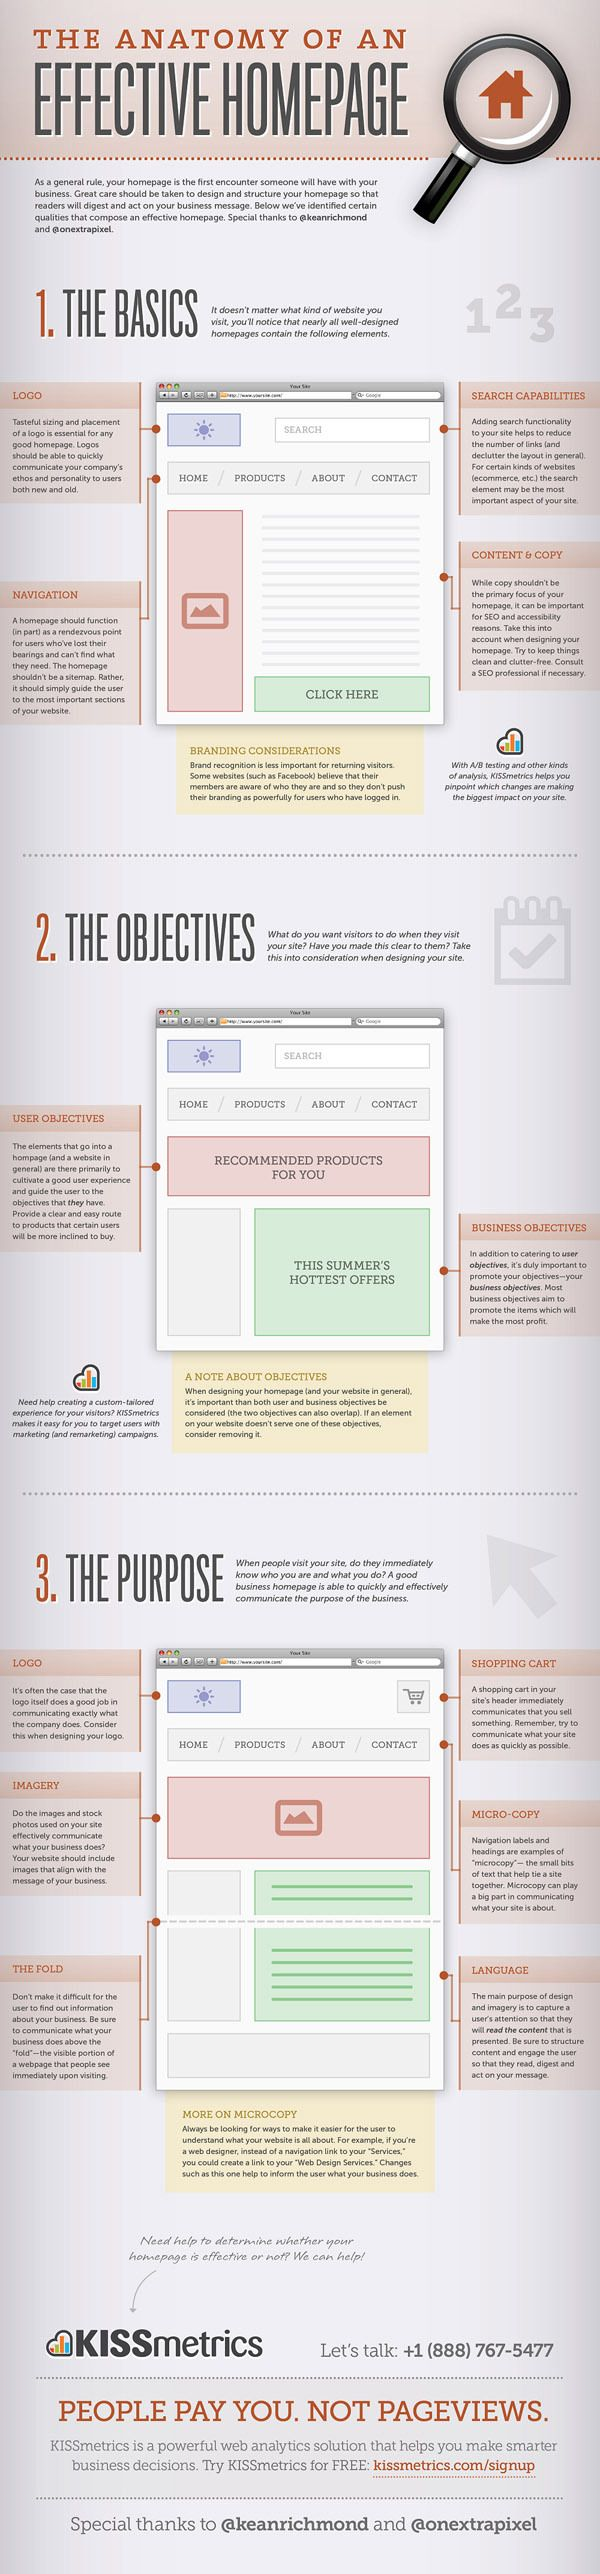 Effective Homepage [Infographic]